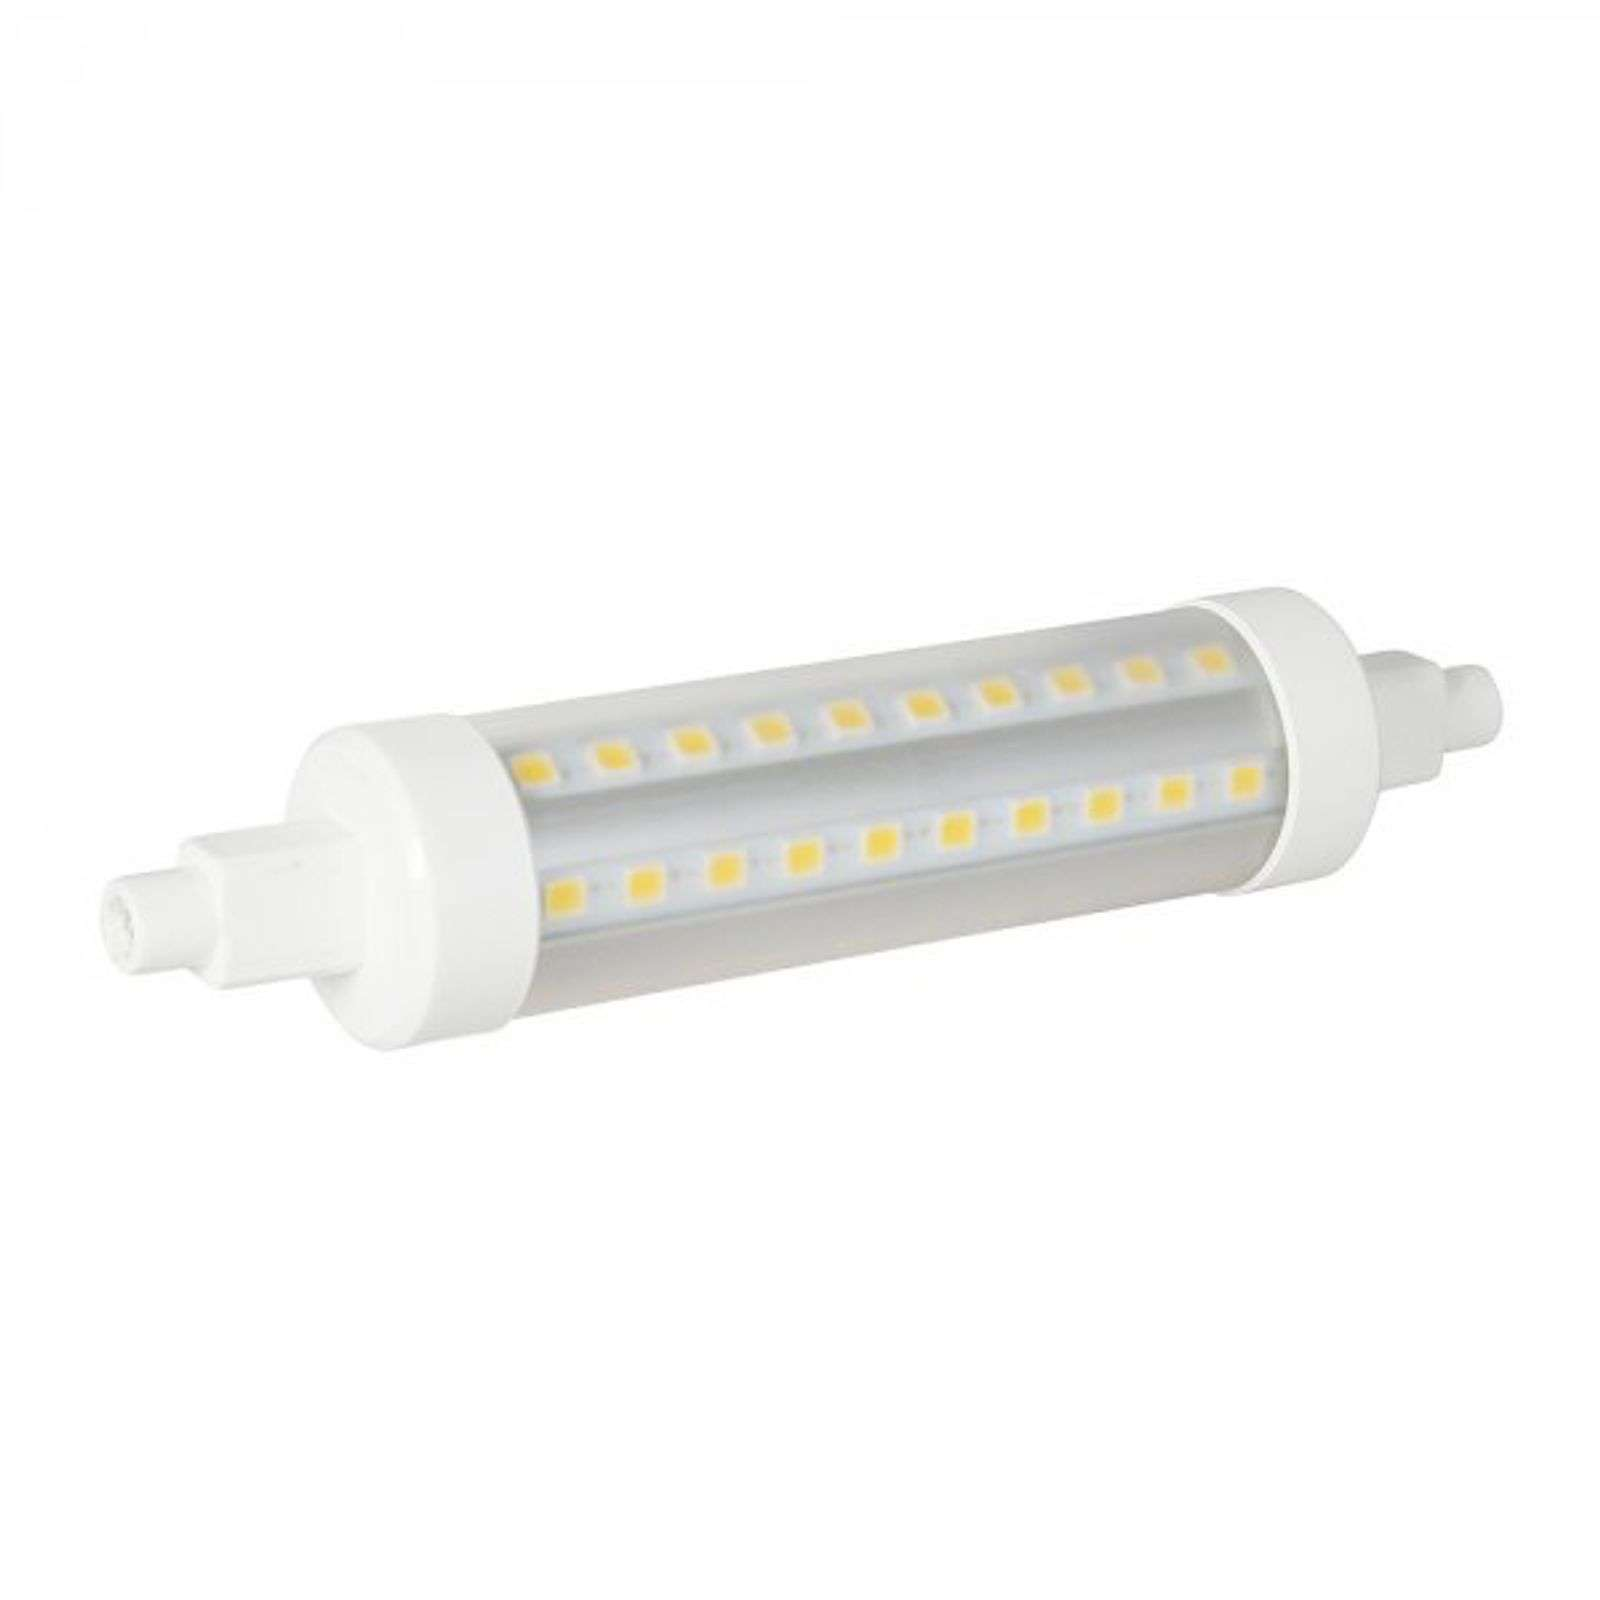 Lampadina LED R7s 8 W 827, dimmerabile